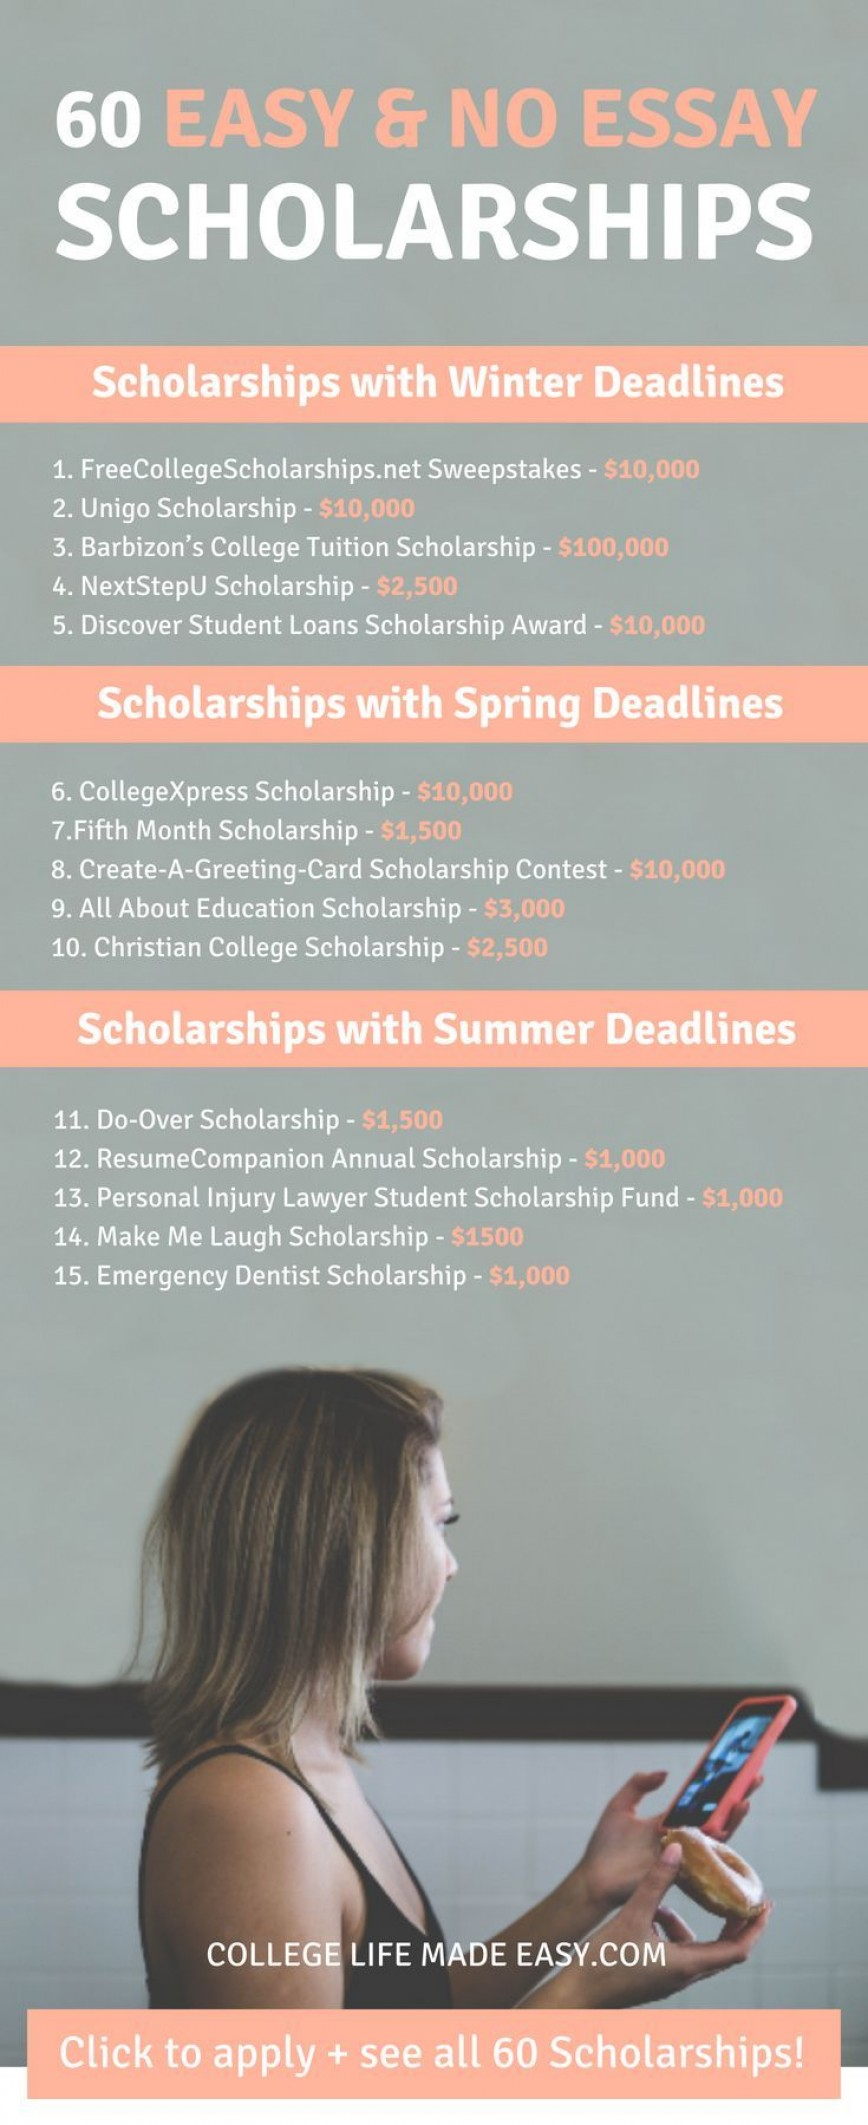 017 Essay Example Free Staggering Scholarships 2019 No For High School Students